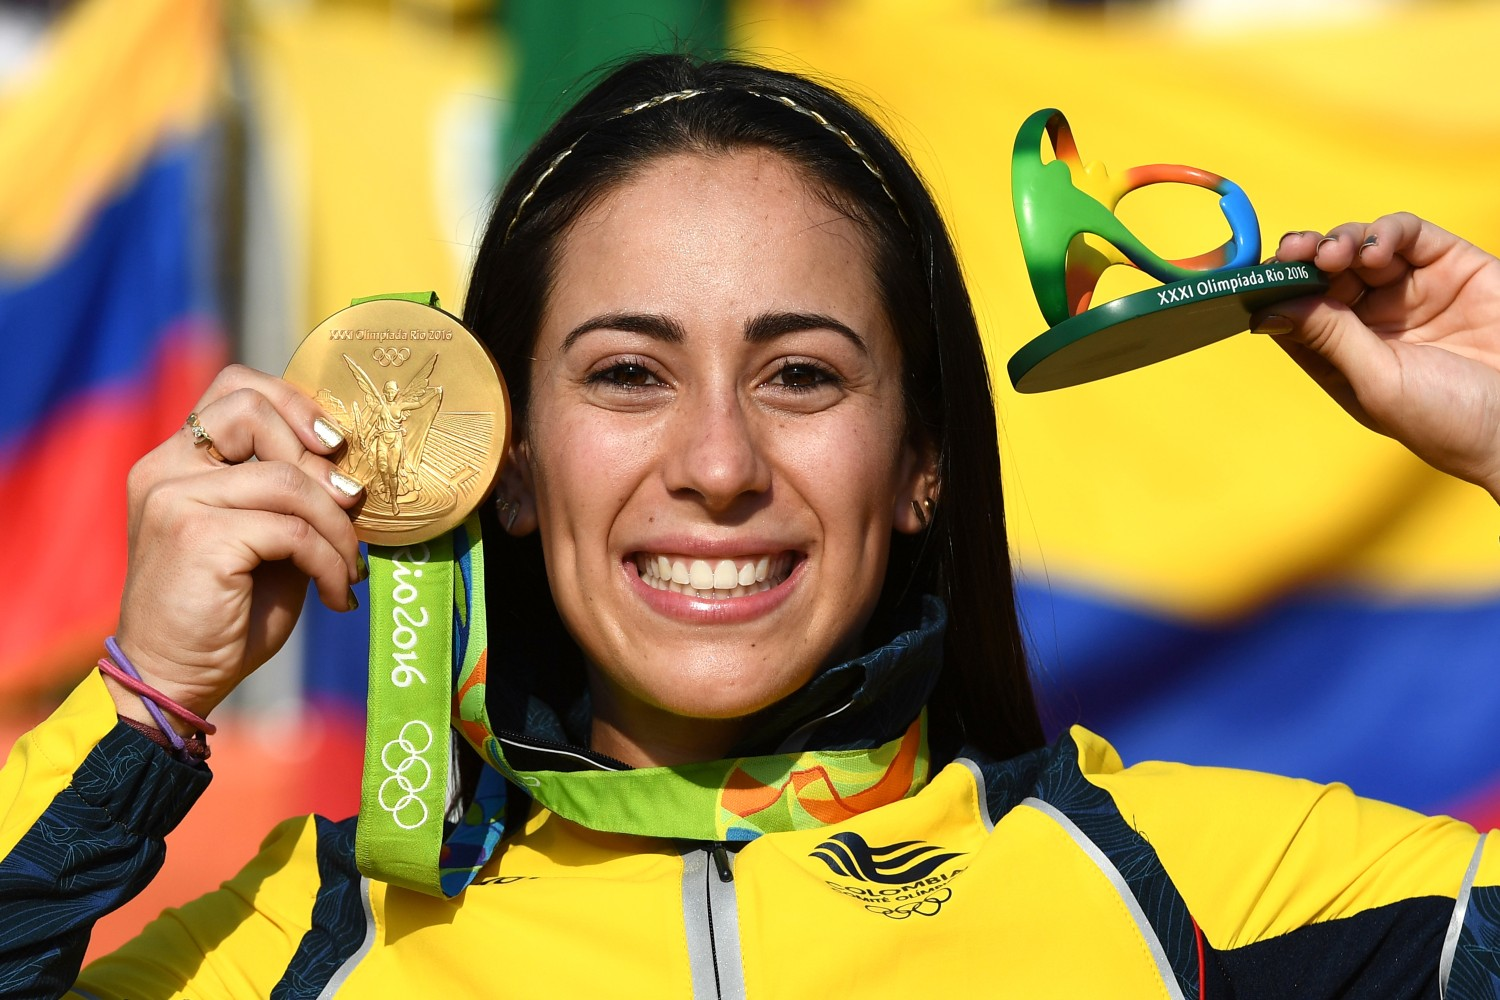 Colombian cycling team women names - Mariana Pajon Of Colombia Gold Medal Cycling